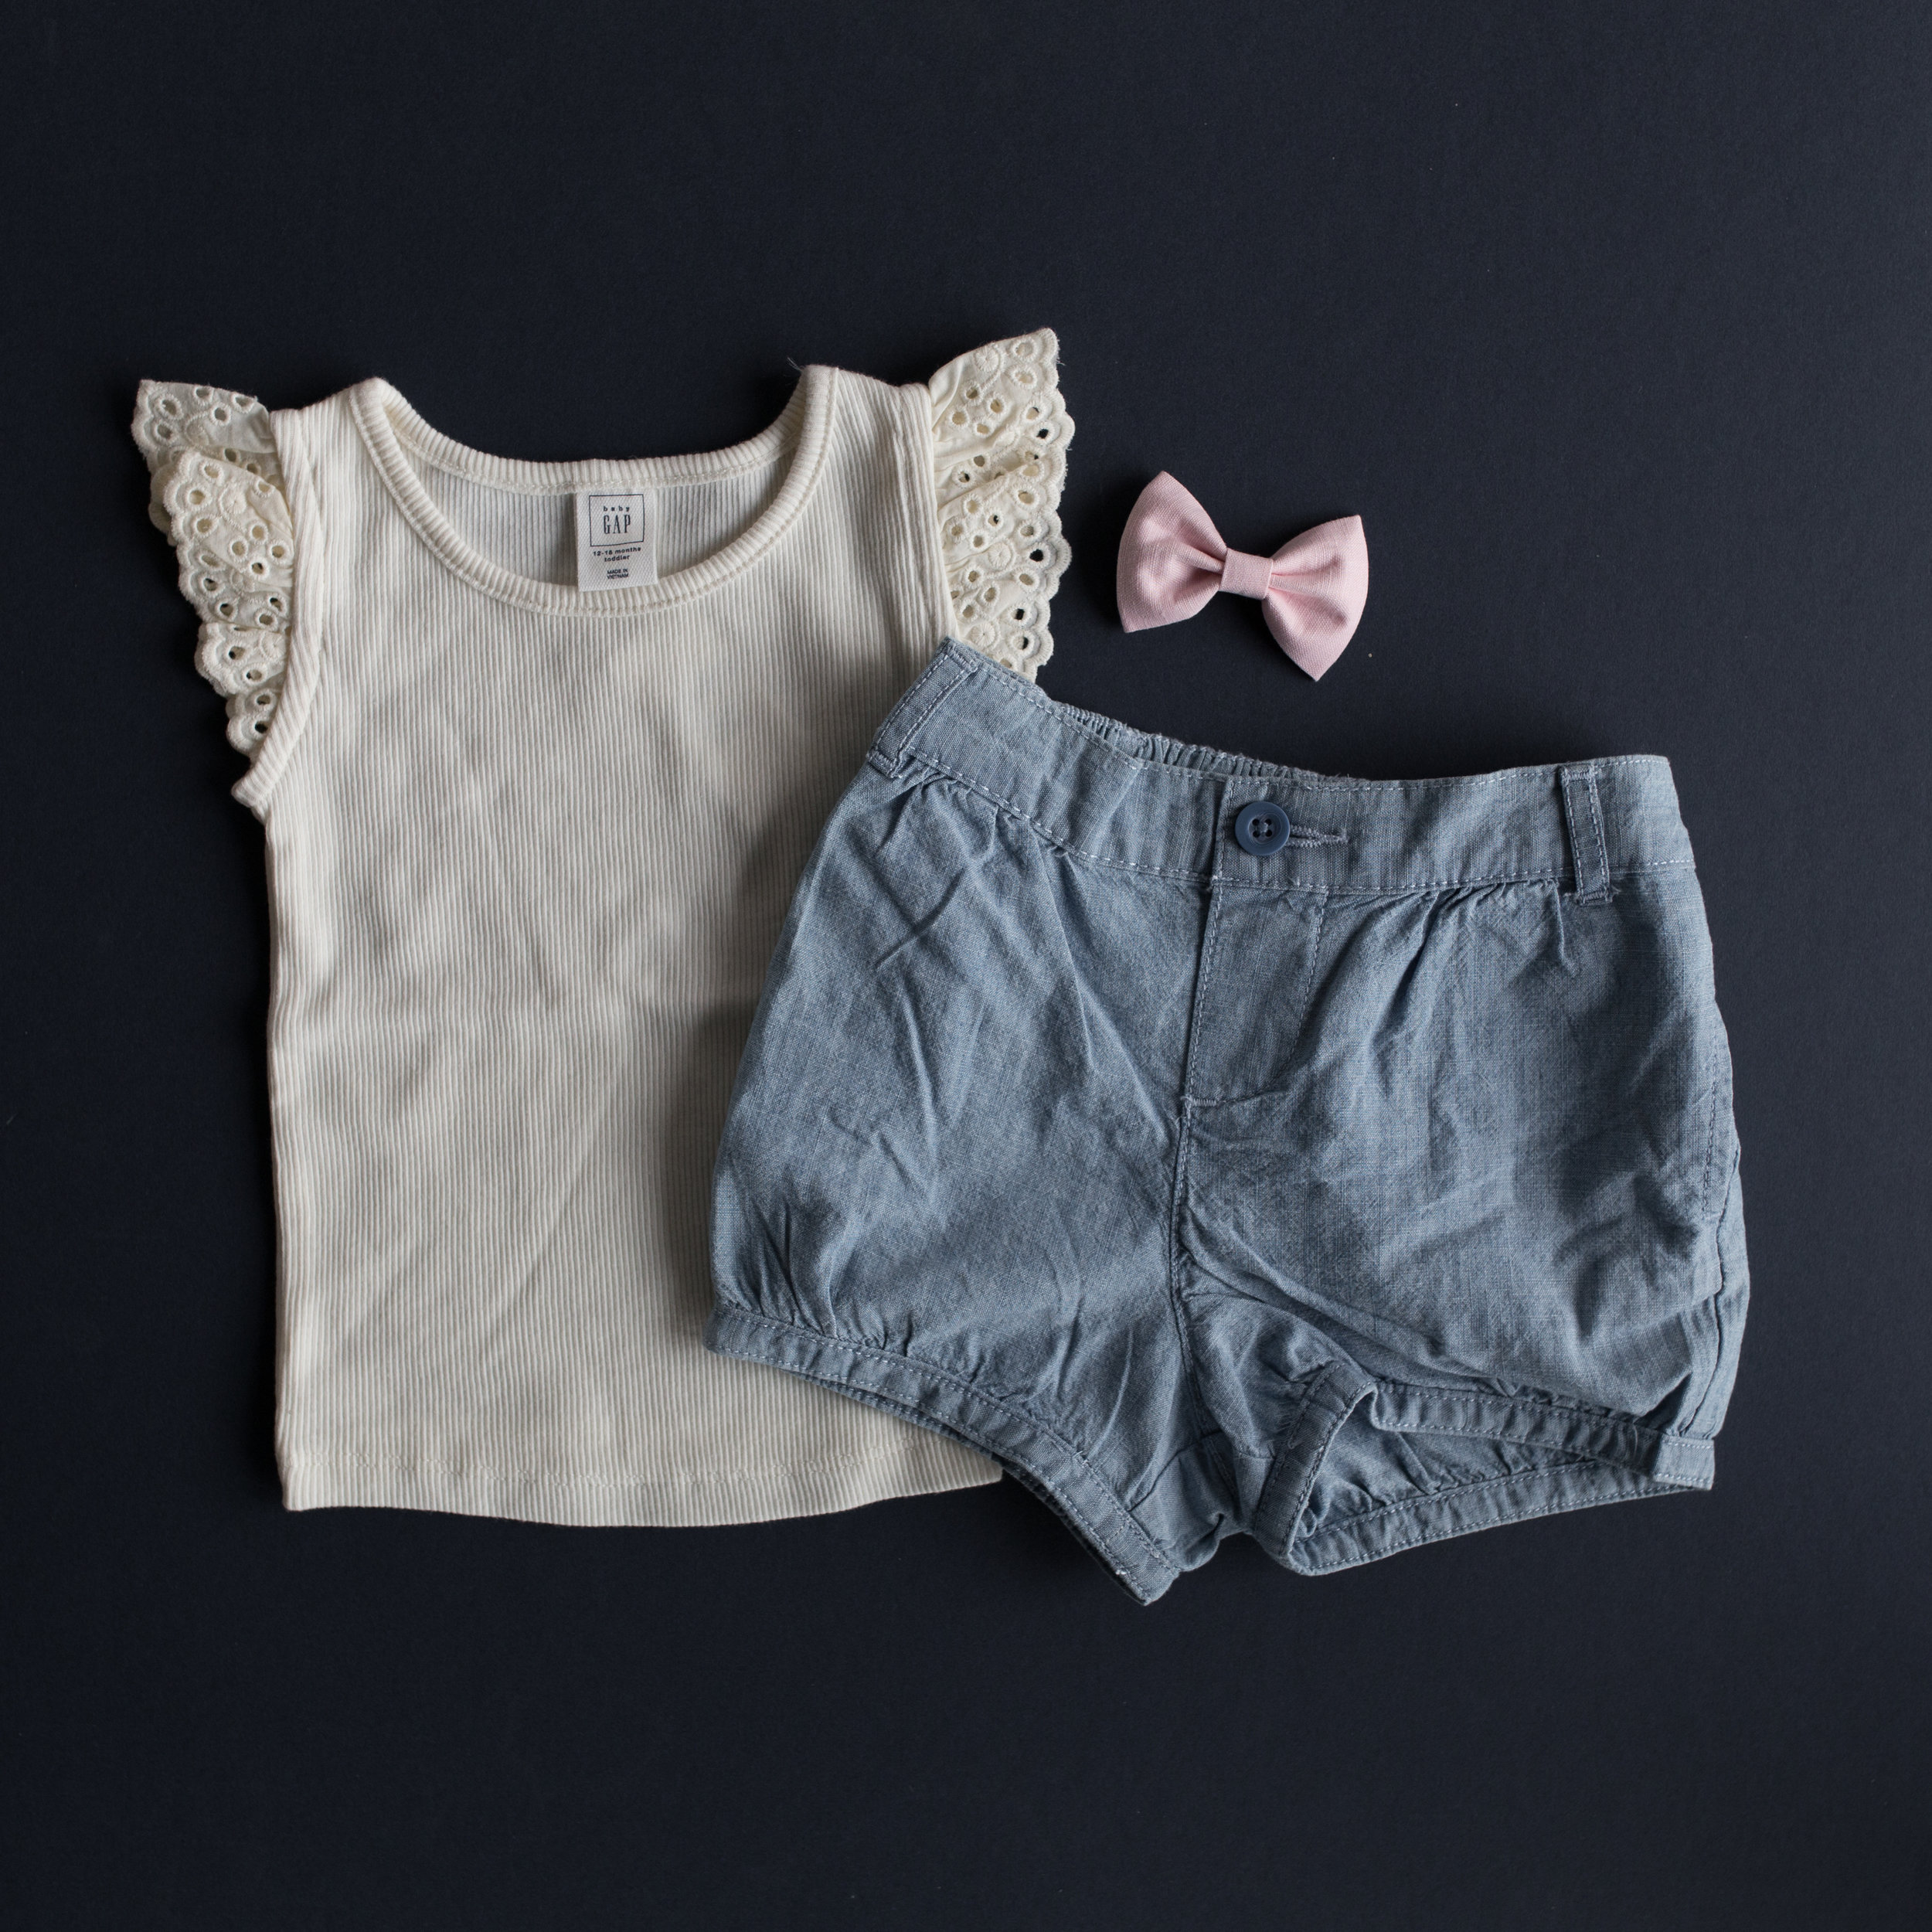 Chambray bubble shorts $14.97 and ivory ruffle top $7.97 from Gap!  http://www.gap.com/browse/product.do?cid=83634&pcid=65263&vid=1&pid=654173002  http://www.gap.com/browse/product.do?cid=65271&pcid=65263&vid=1&pid=577563002